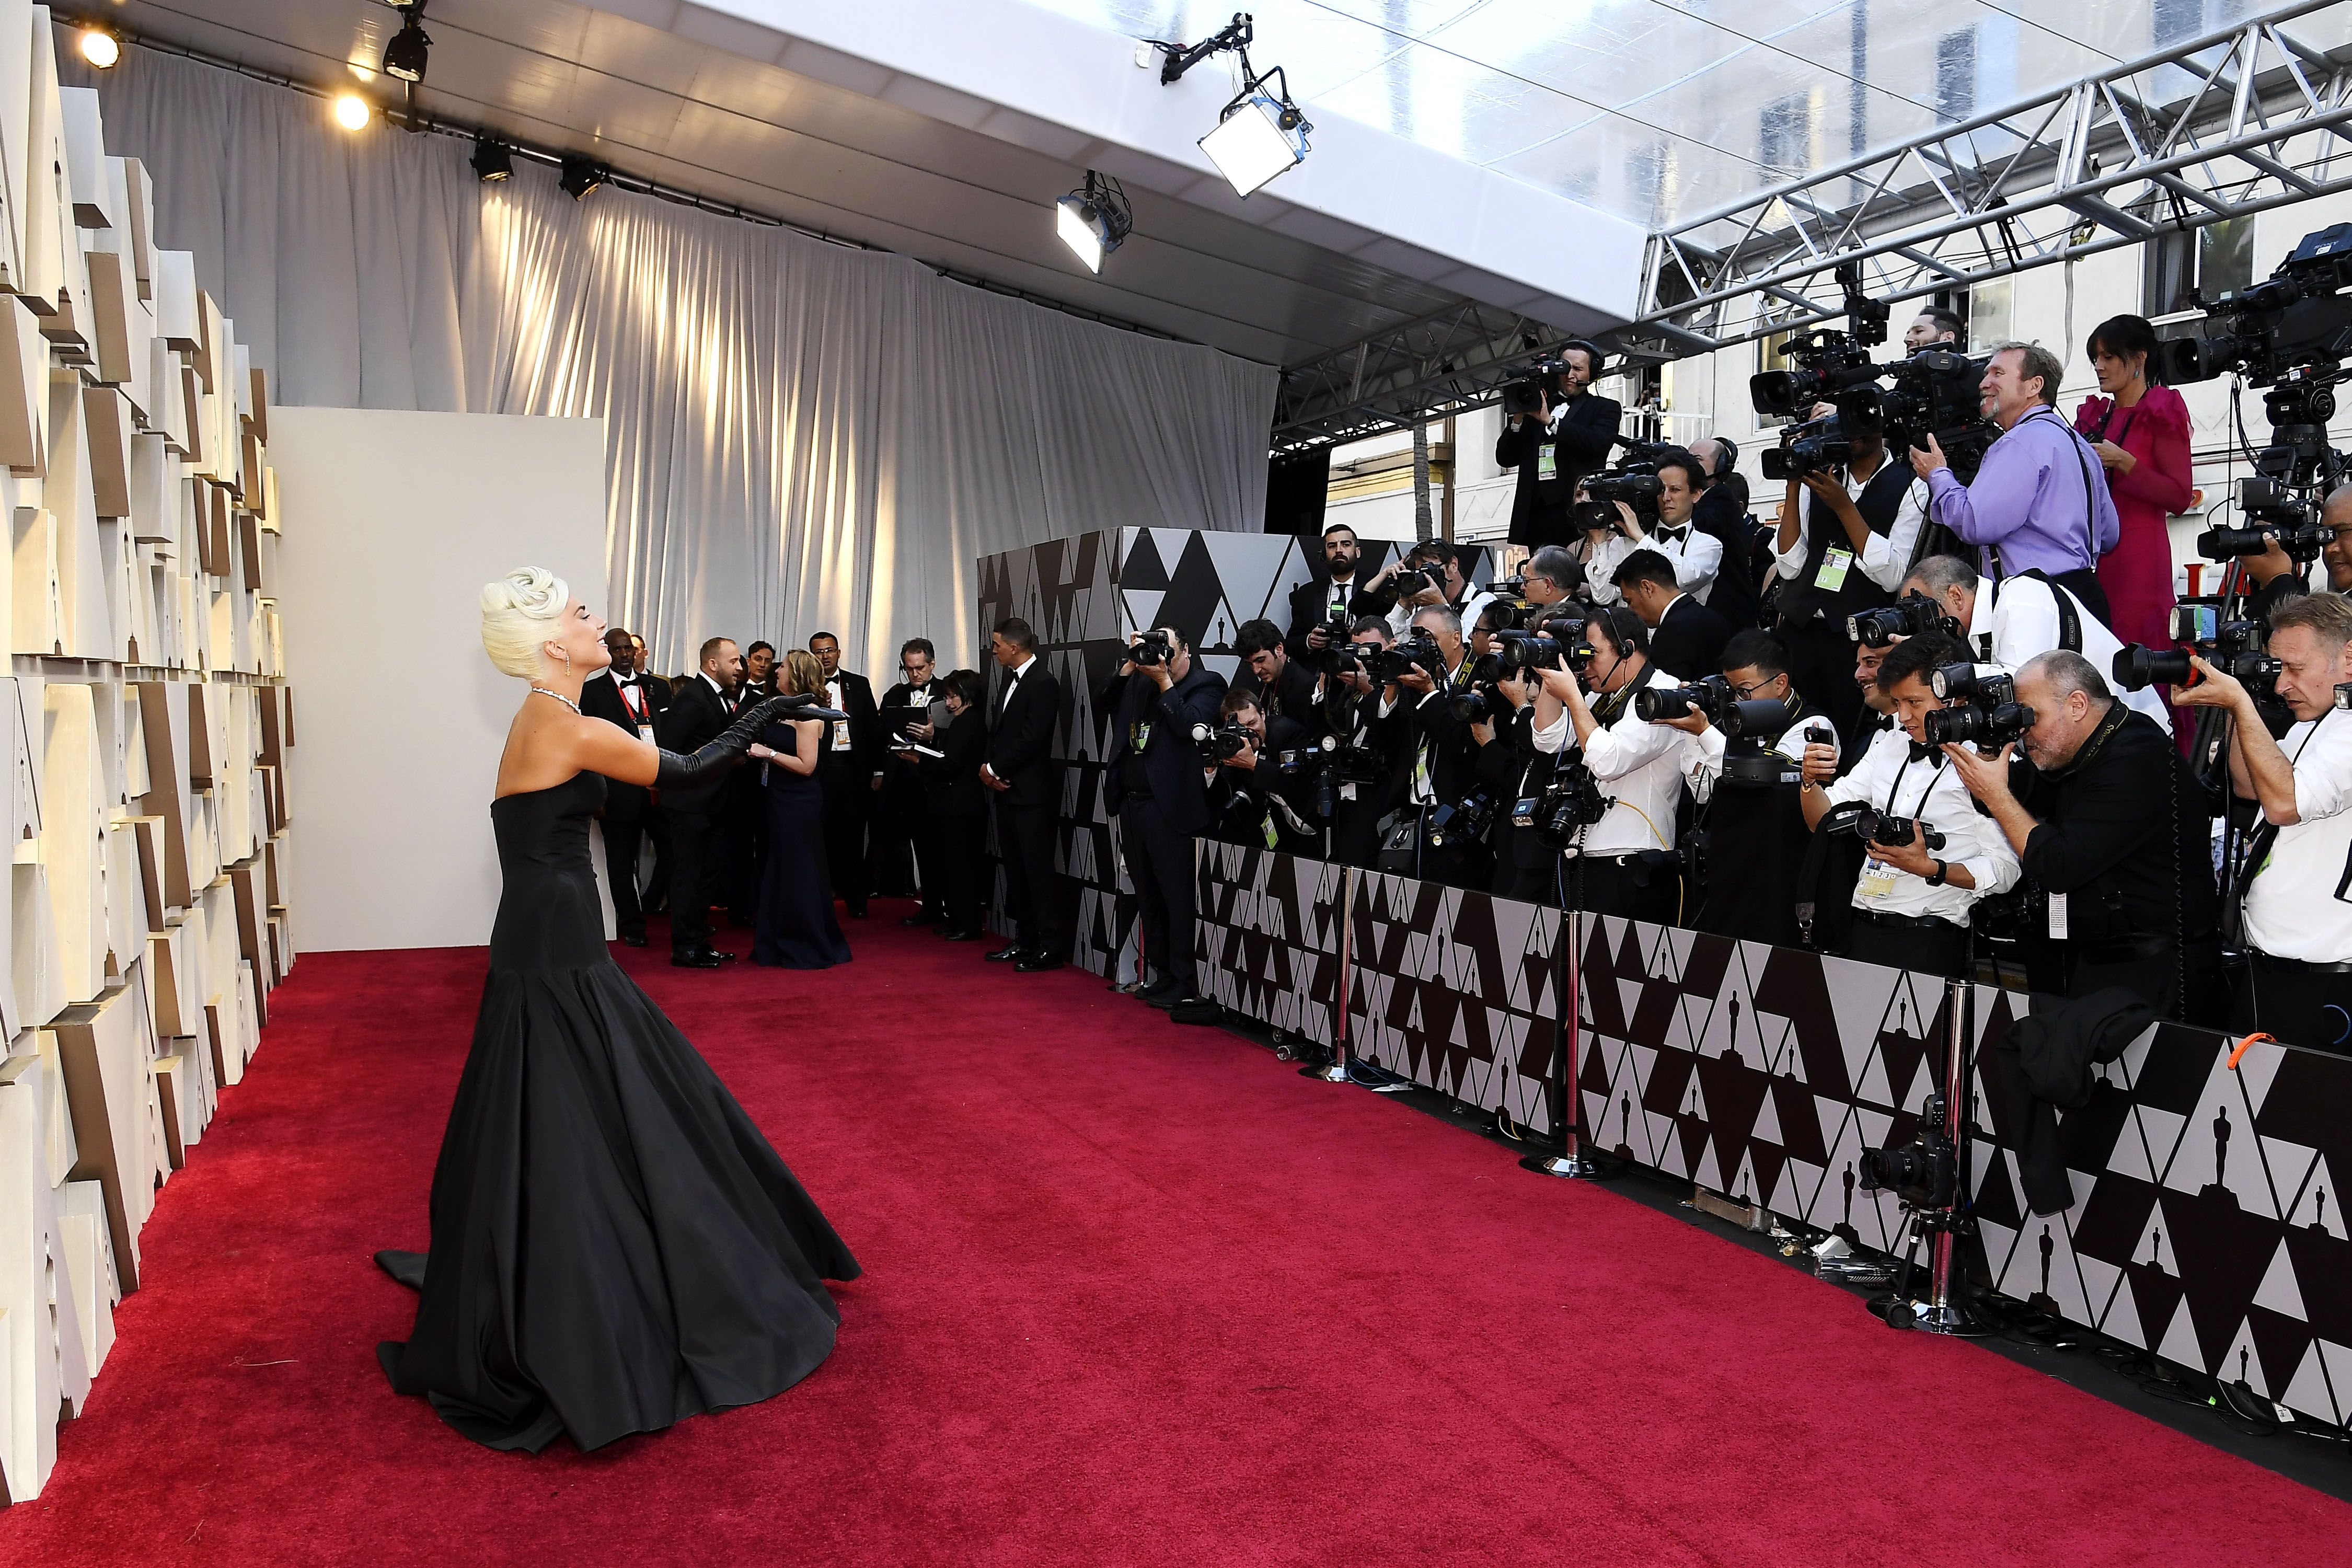 The Oscars red carpet is a secret shade of red which is said to flatter A-listers